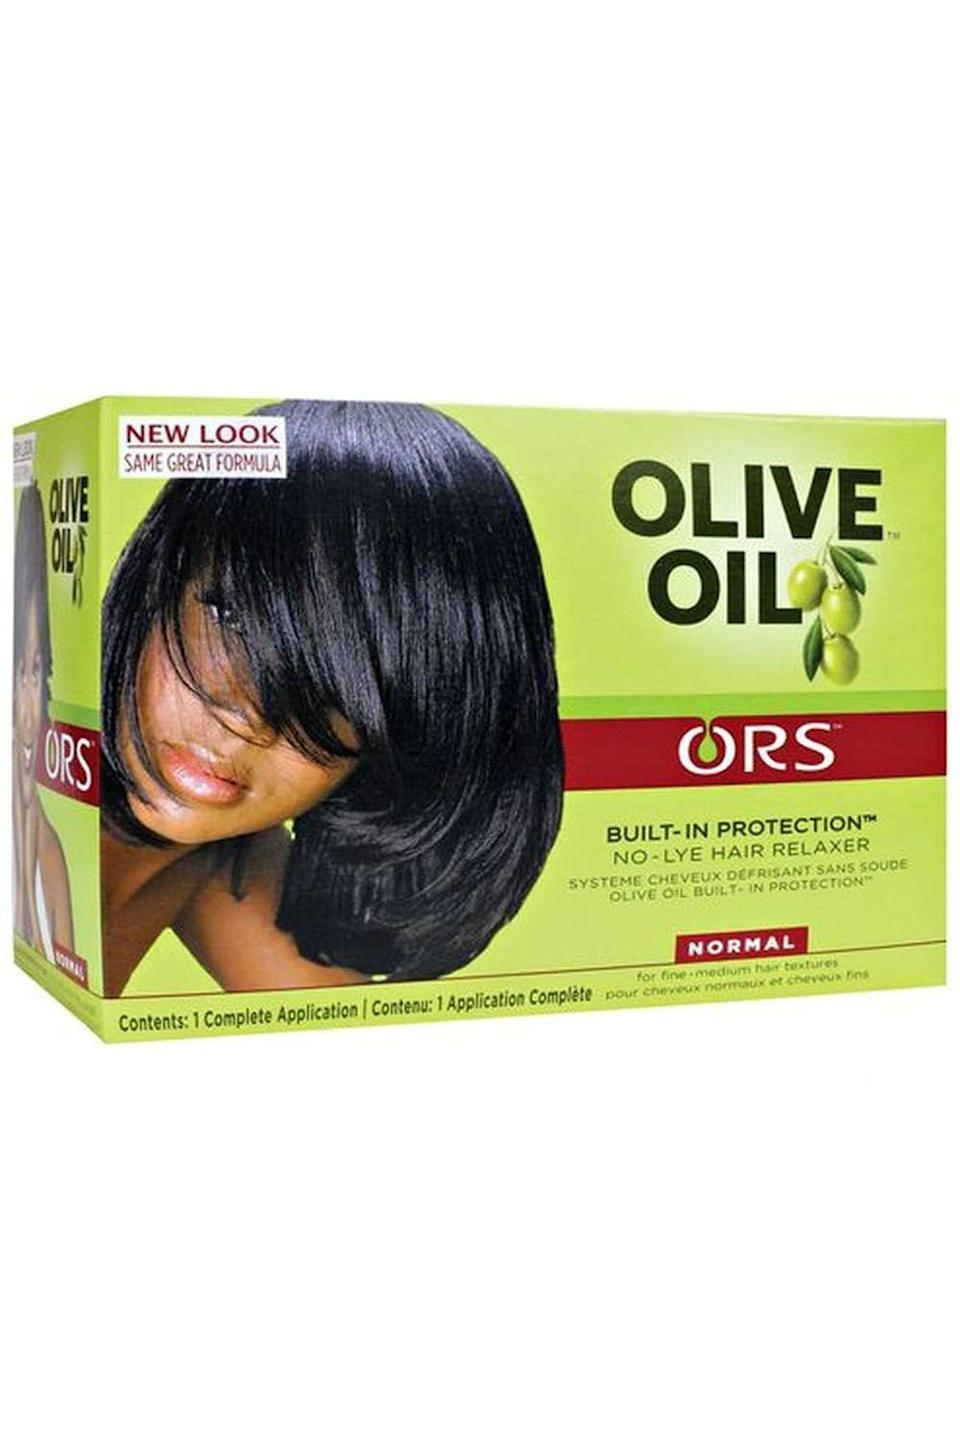 """<p><strong>ORS</strong></p><p>target.com</p><p><strong>$6.30</strong></p><p><a href=""""https://www.target.com/p/ors-olive-oil-no-lye-relaxer-normal/-/A-13044272"""" rel=""""nofollow noopener"""" target=""""_blank"""" data-ylk=""""slk:Shop Now"""" class=""""link rapid-noclick-resp"""">Shop Now</a></p><p>Hair relaxers can come at a steep price (I mean, they are pretty intense chemicals, so it makes sense) but <strong>you can still find a quality relaxer for <a href=""""https://www.cosmopolitan.com/style-beauty/a9169065/drugstore-beauty-products-2017/"""" rel=""""nofollow noopener"""" target=""""_blank"""" data-ylk=""""slk:basically no money"""" class=""""link rapid-noclick-resp"""">basically no money</a>.</strong> And because olive oil is the MVP in this product's formula, you won't have to sacrifice any softness or moisture to get your hair straight.</p>"""